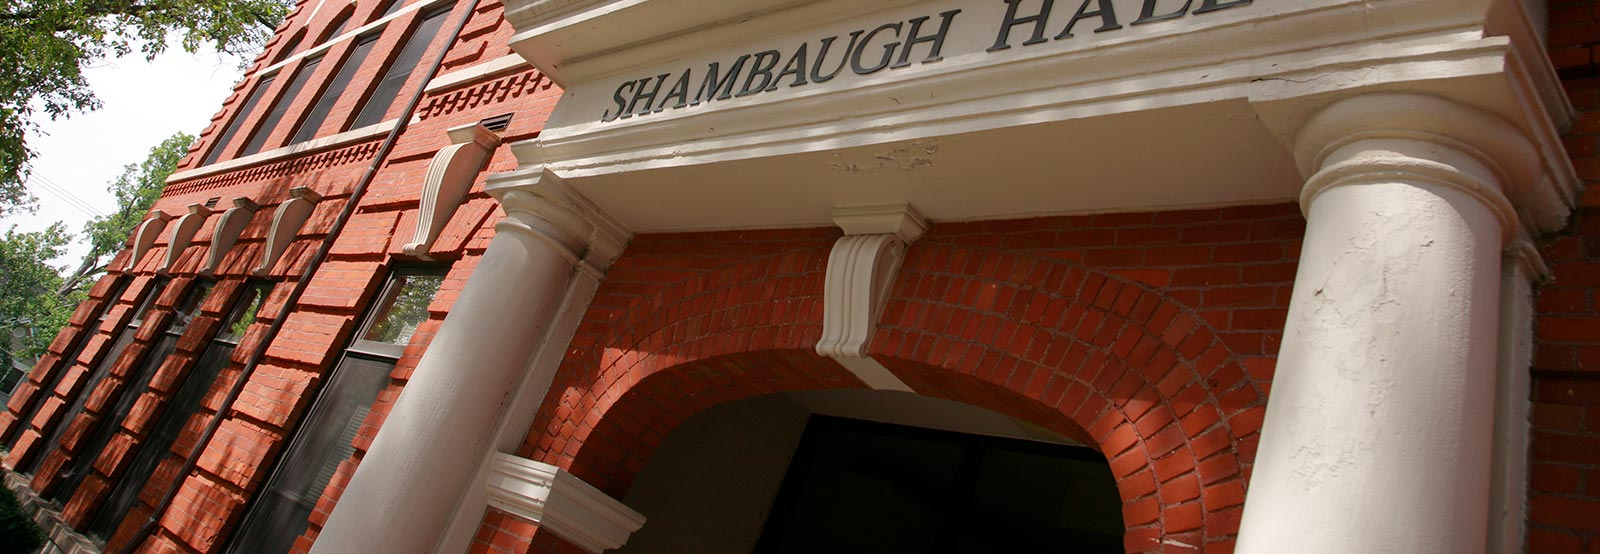 Shambaugh Hall